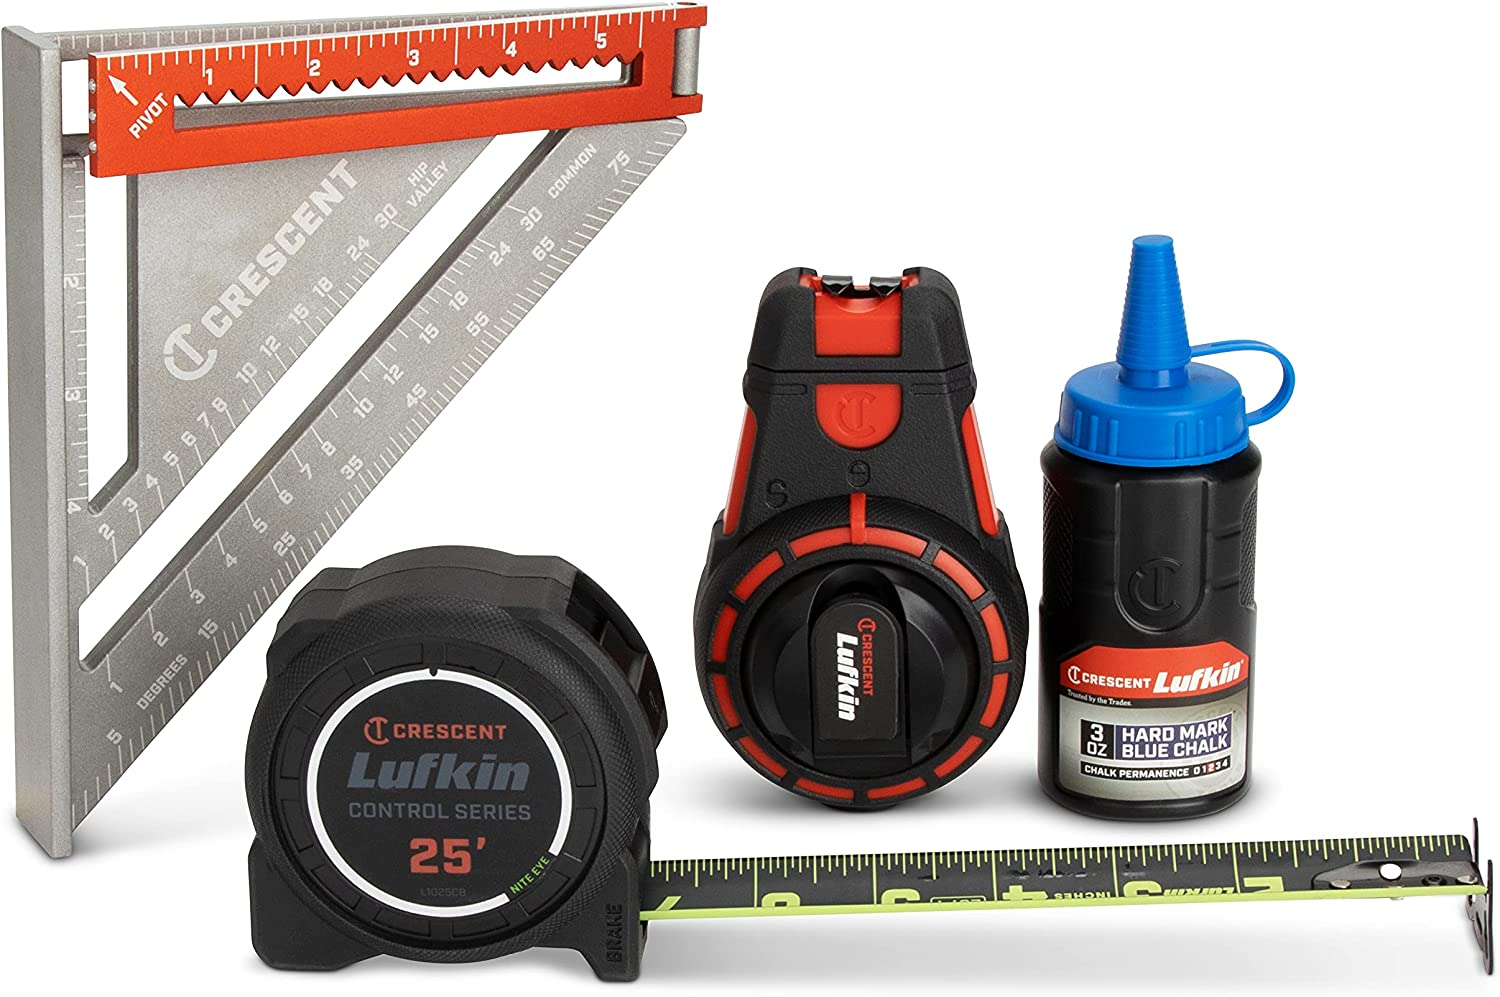 Crescent Action Pack with 25' Nite supreme Tape Measure Eye Super-cheap 2-in-1 Exte